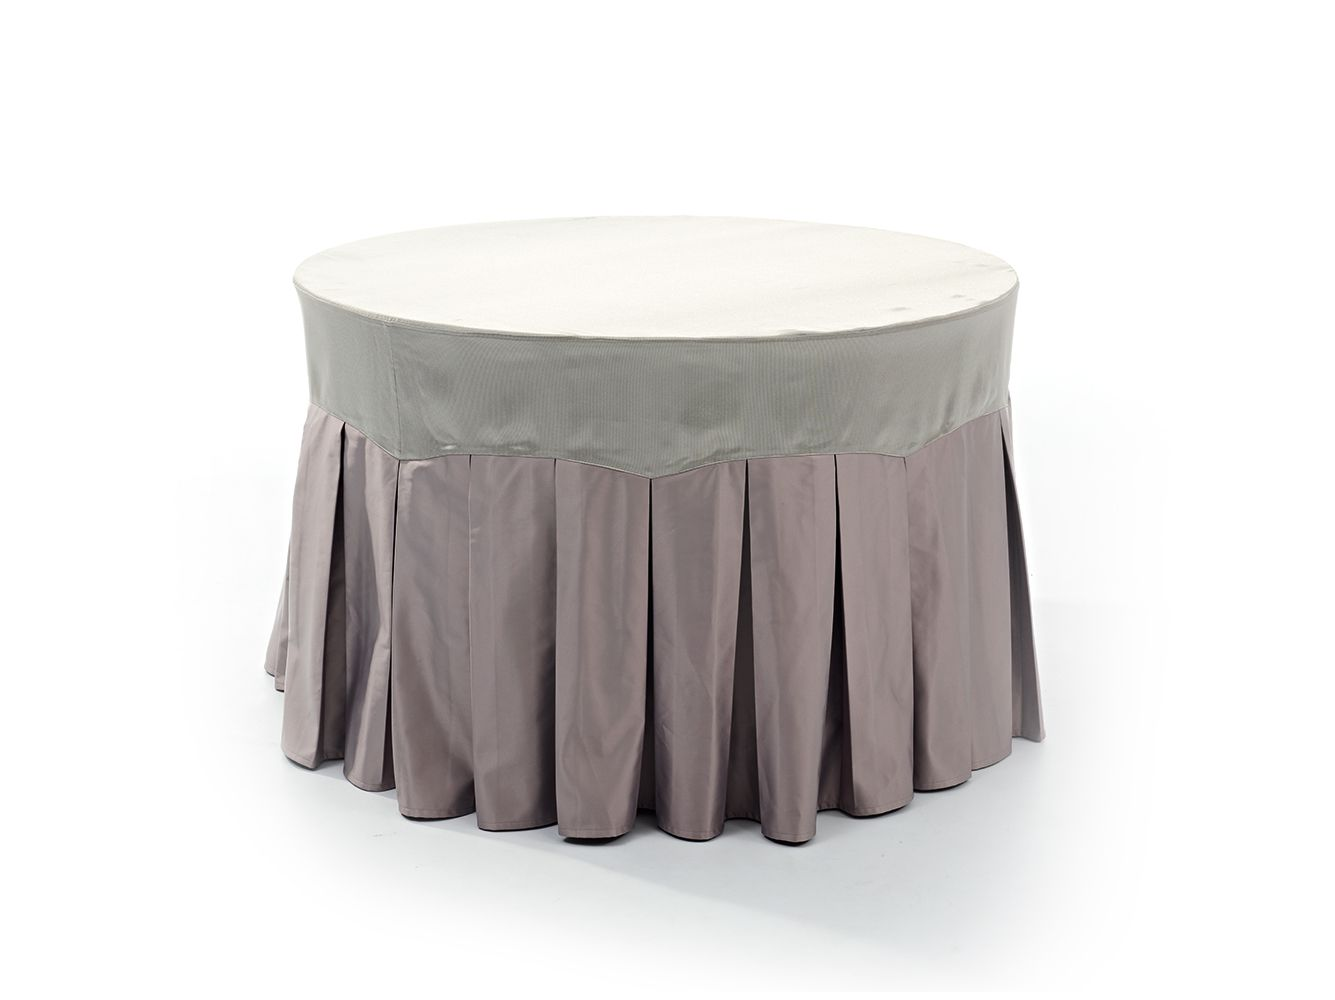 Ingrid Lesage Creations  Table covers